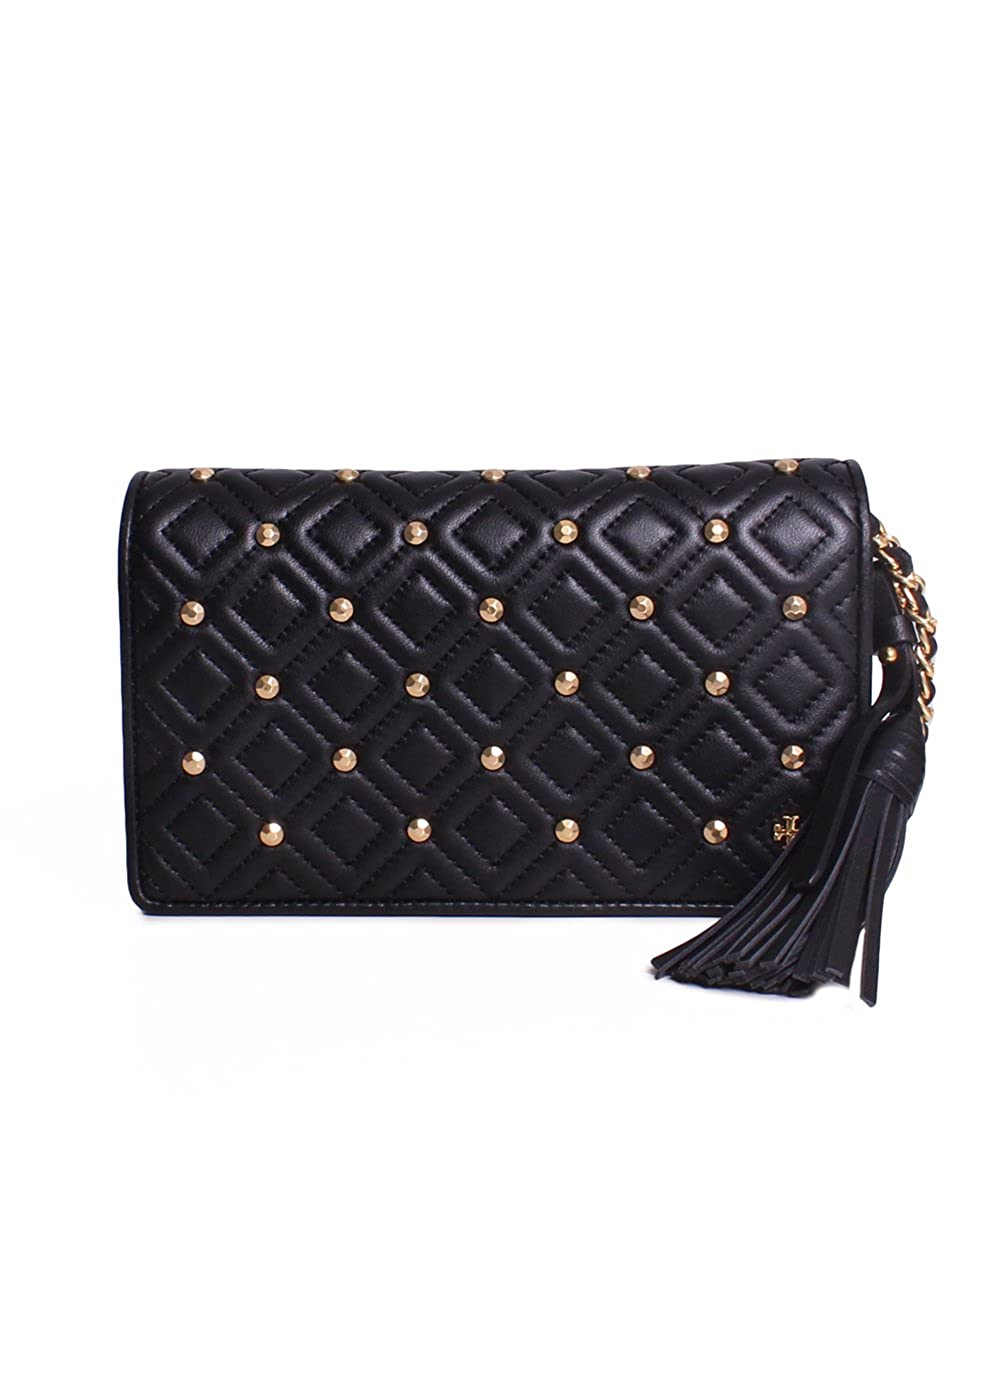 Black Tory Burch Fleming Stud Flat Wallet CrossBody